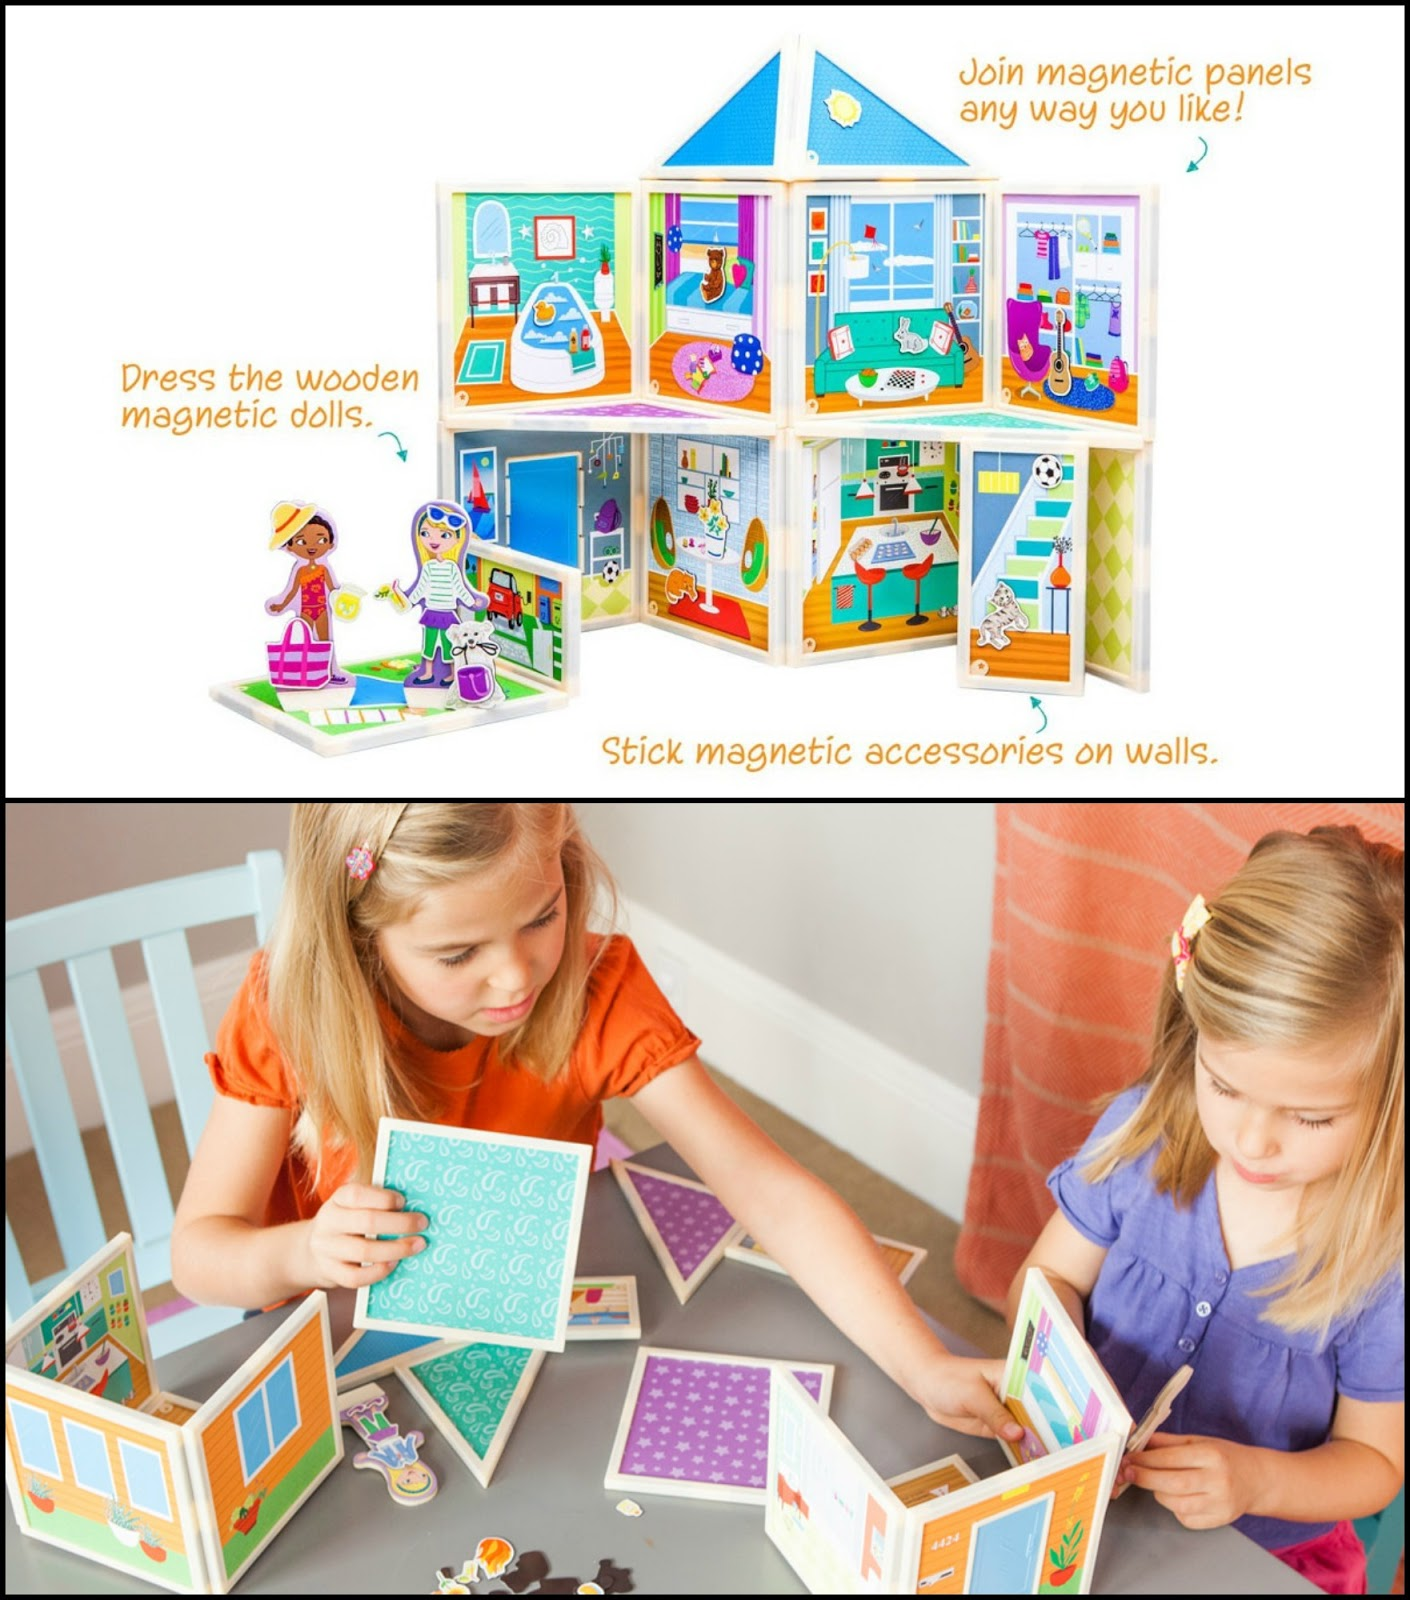 Build & Imagine toys